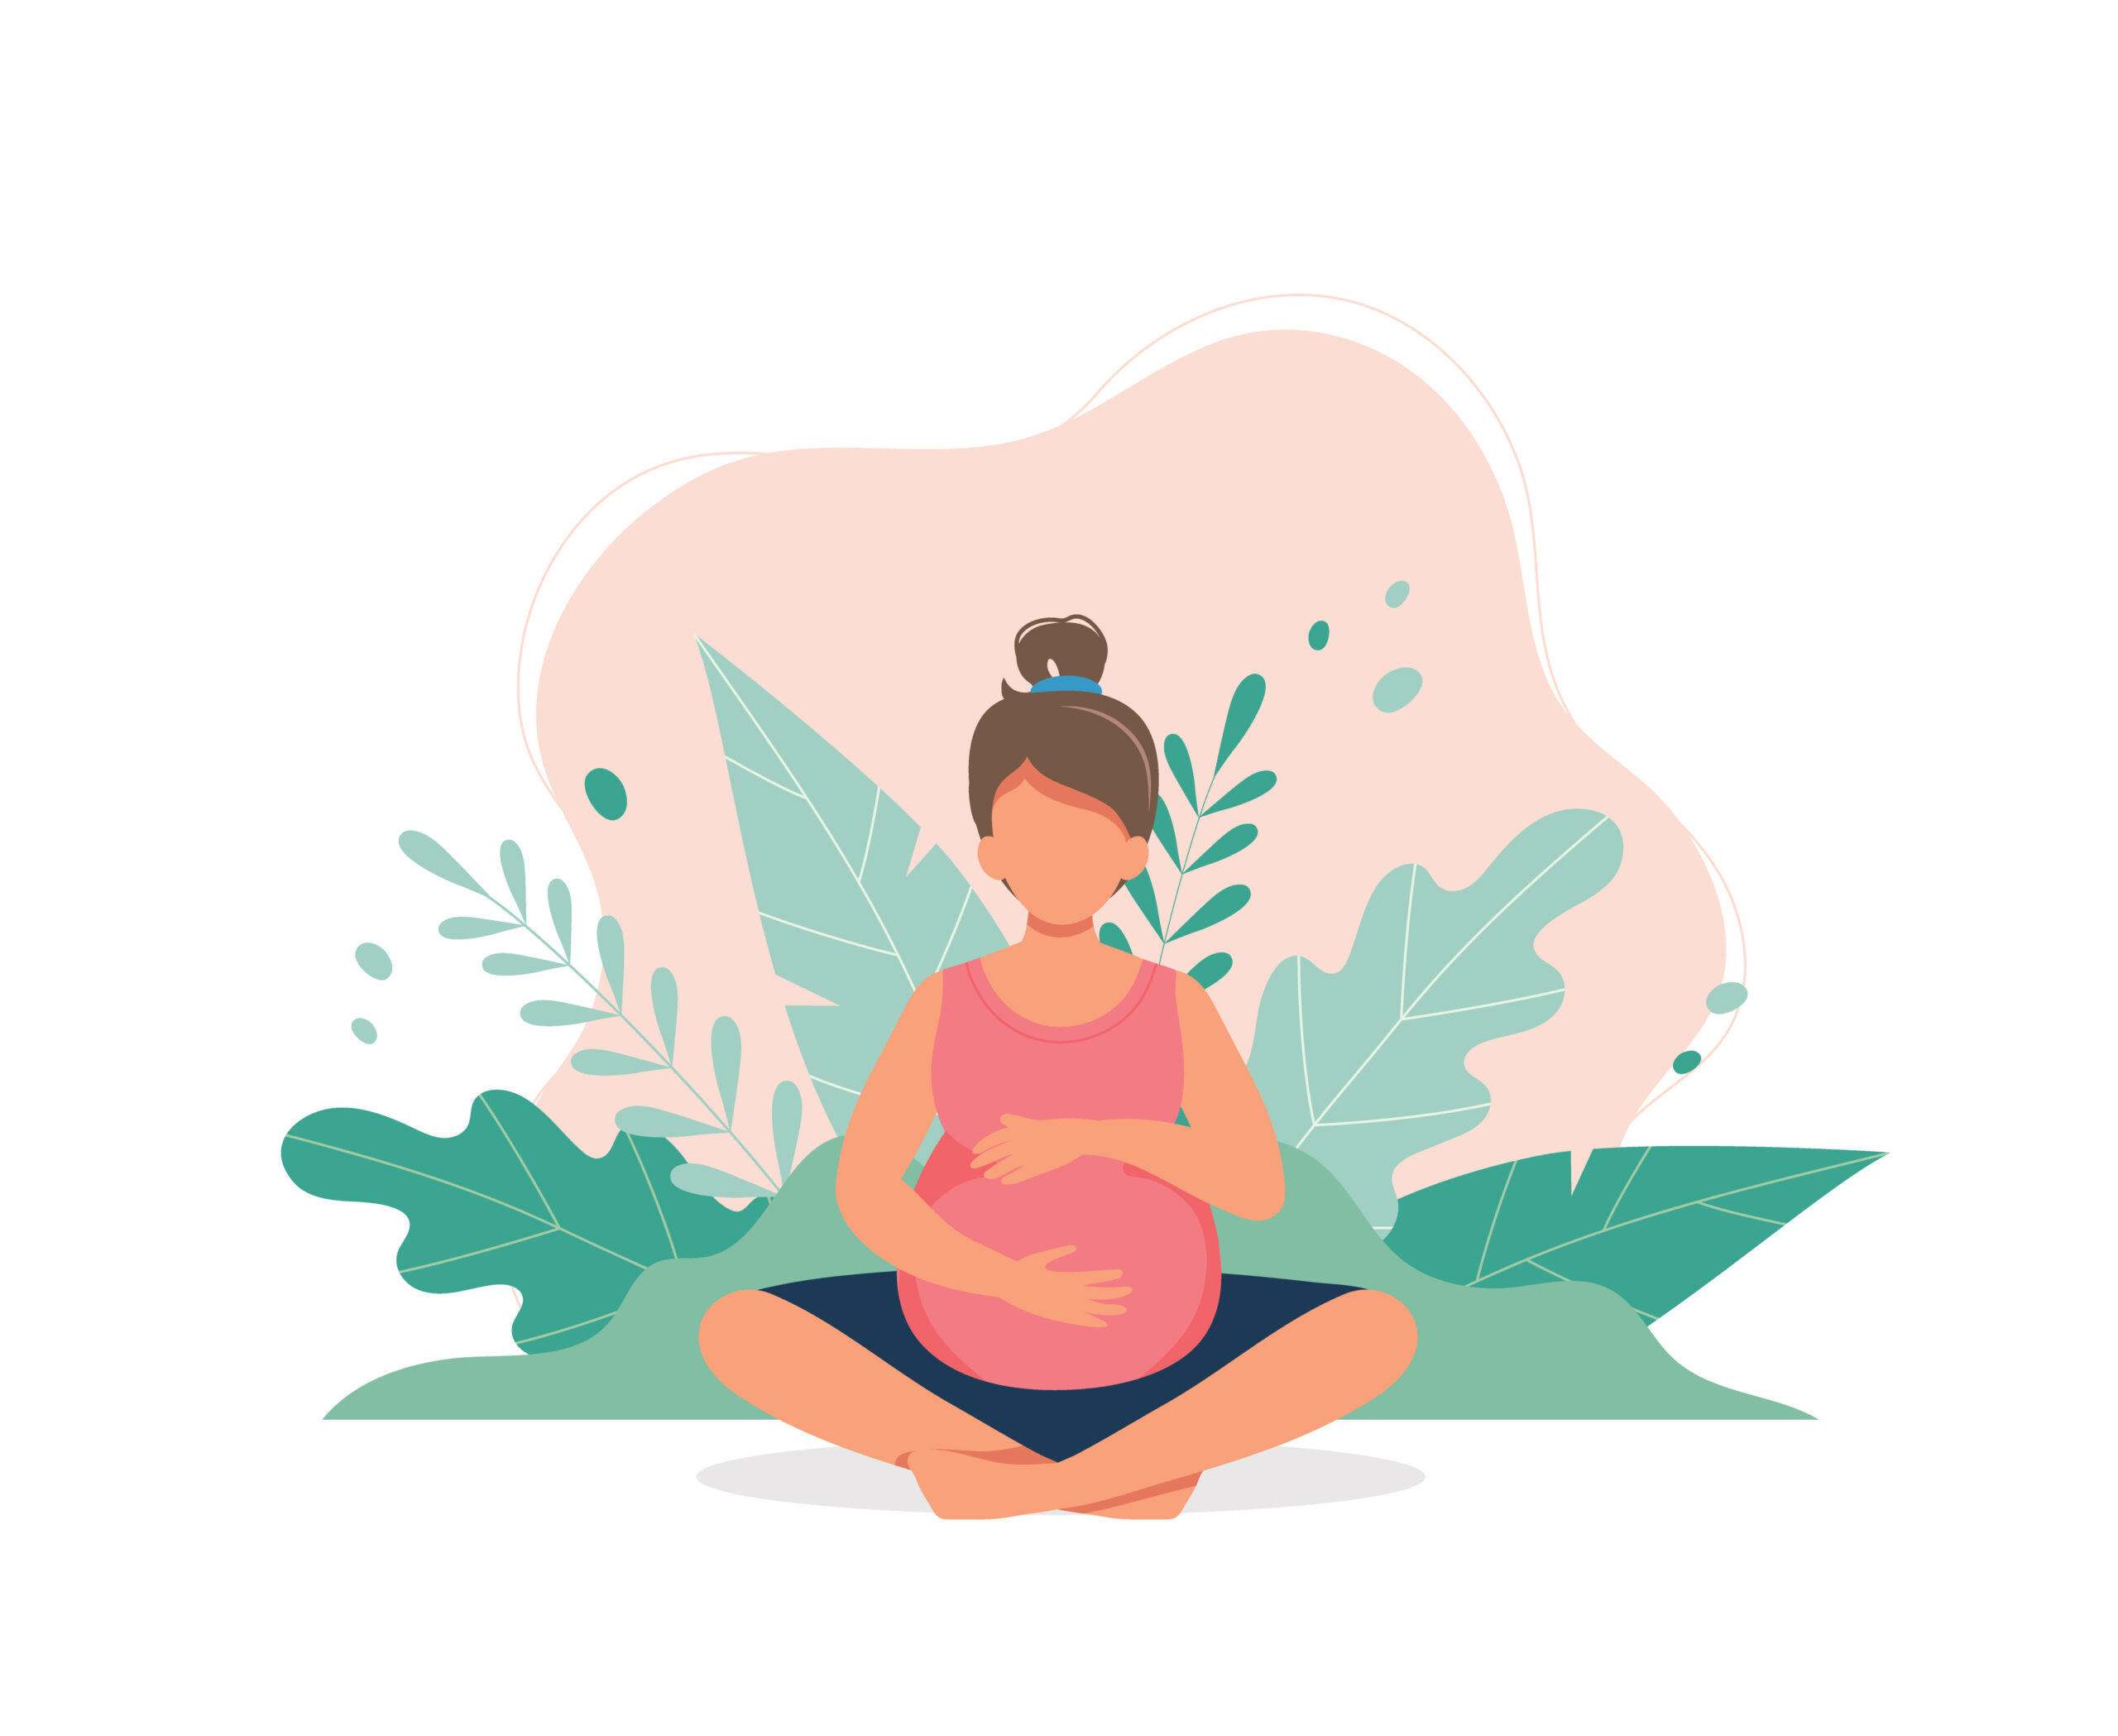 Mindfulness-Based Interventions During Pregnancy to Support Perinatal Mental Health